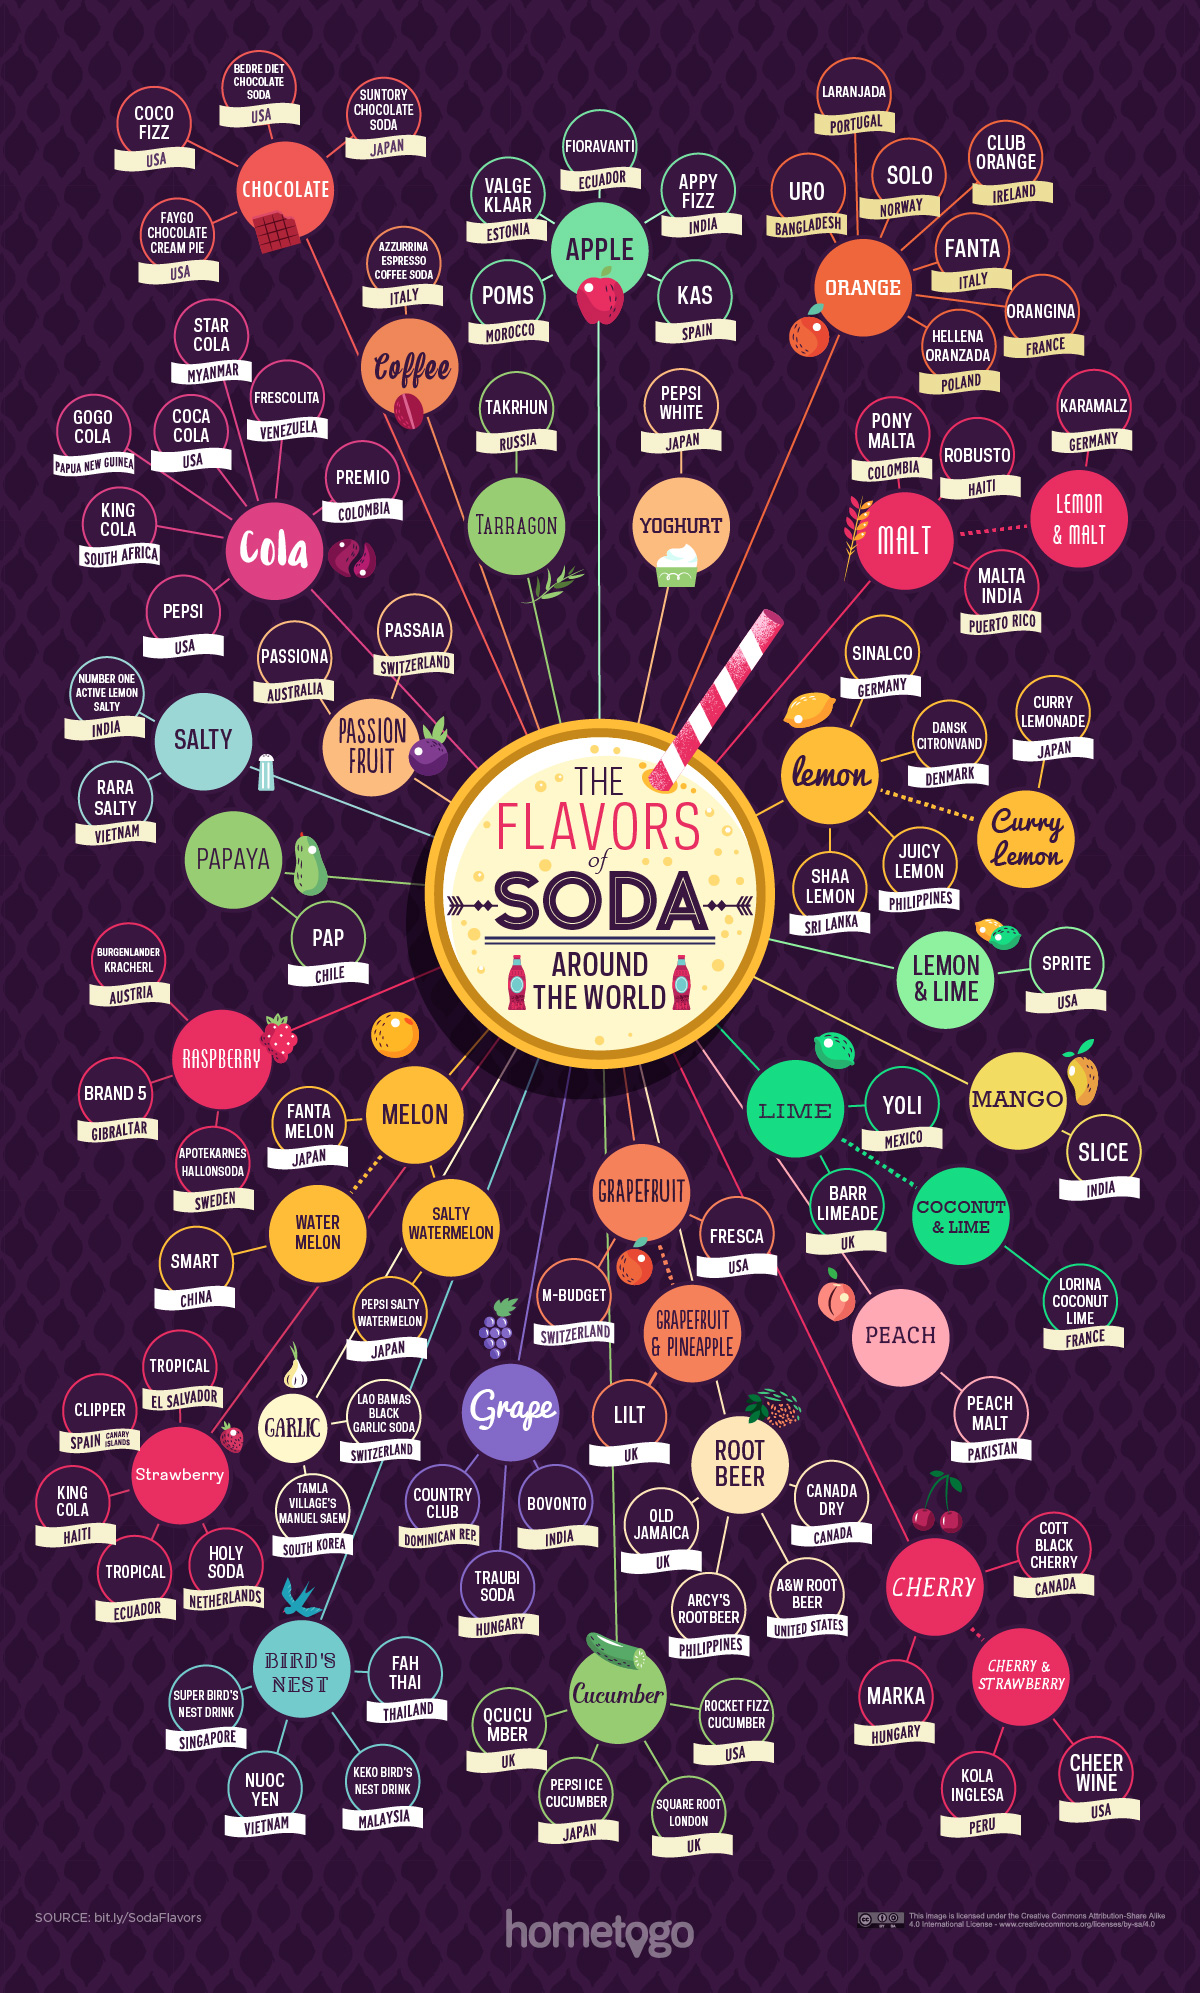 The Different Soda Flavors Around The World - Infographic